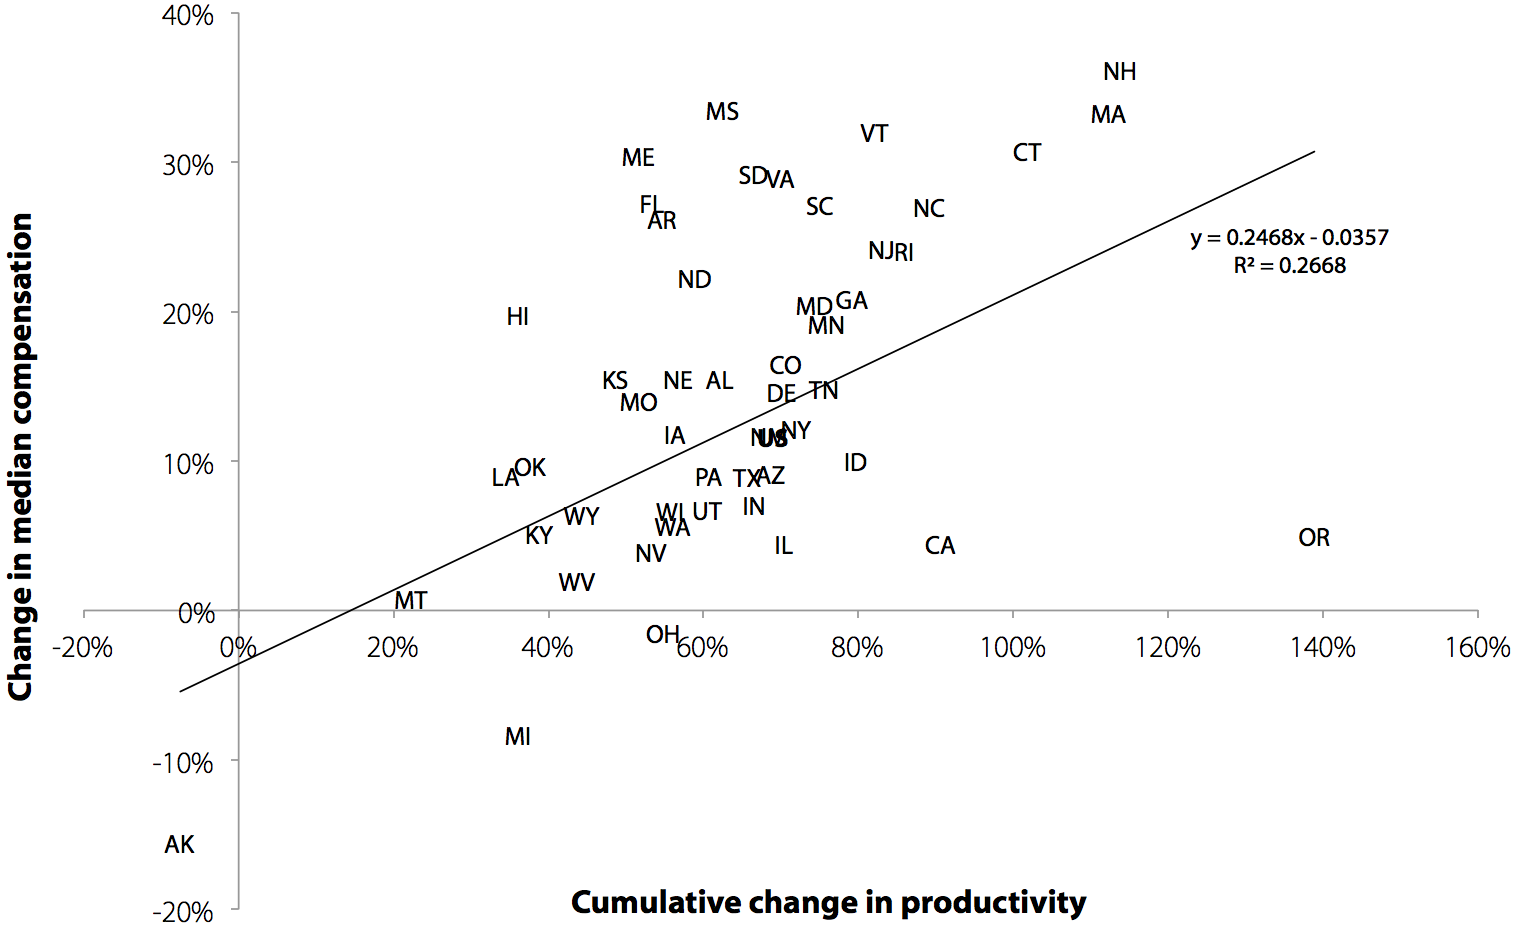 Worker compensation has increased more in states with greater increases in productivity: Relationship between change in state median worker compensation and productivity from 1979 to 2012